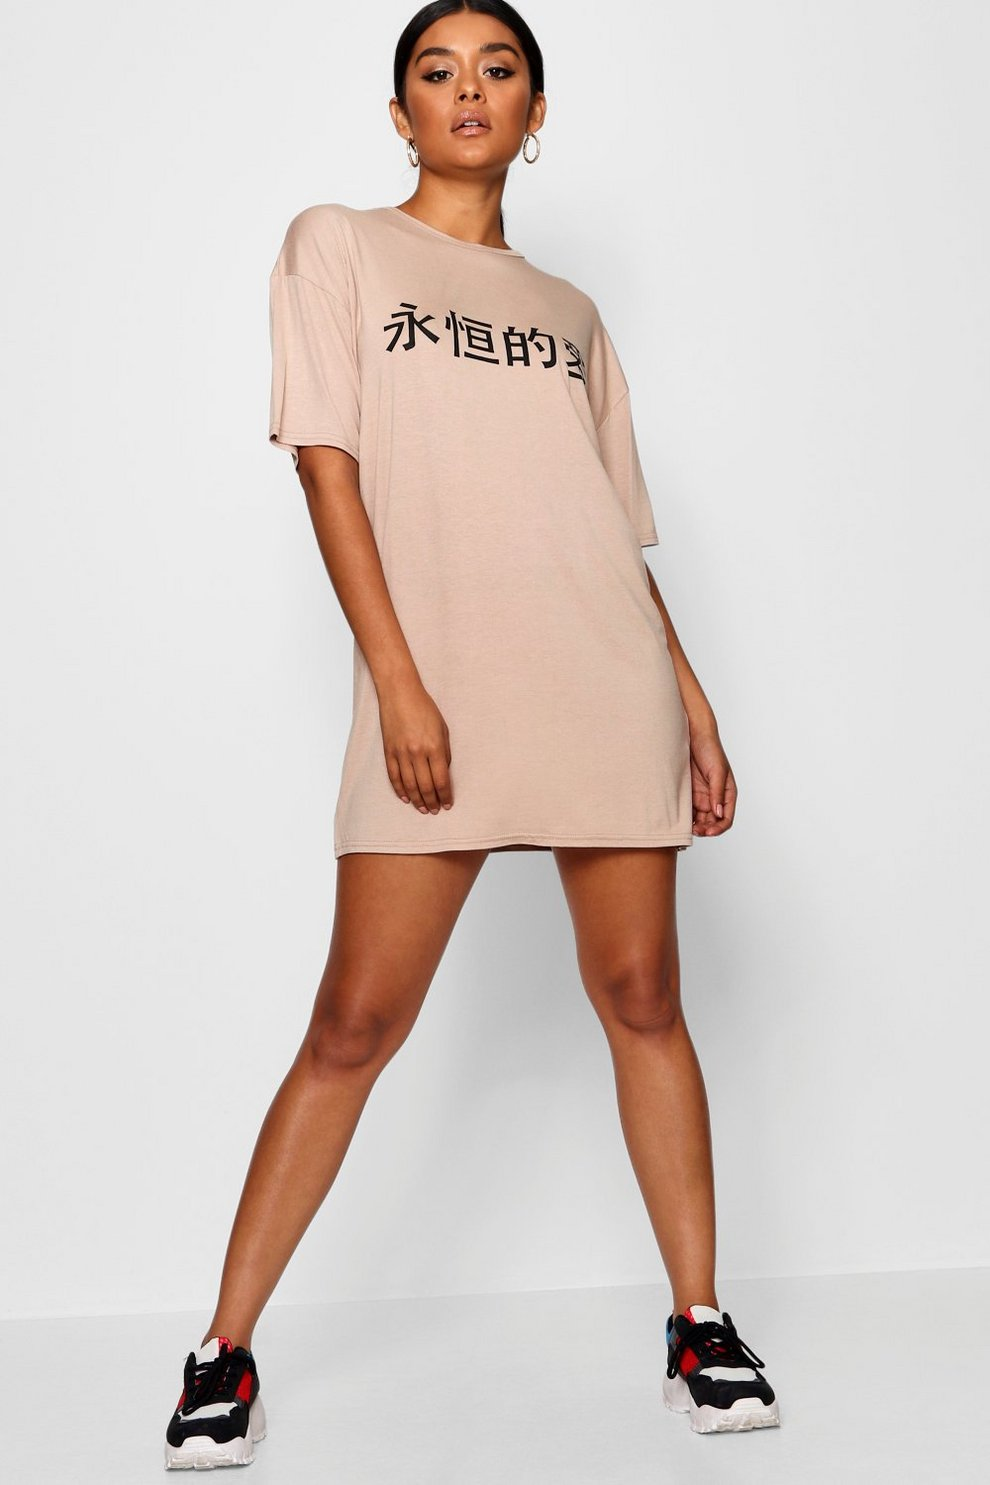 Boohoo Chinese Slogan Oversized T Shirt Dress Latest Clearance Pay With Paypal Cost Cheap Price LkJYN1